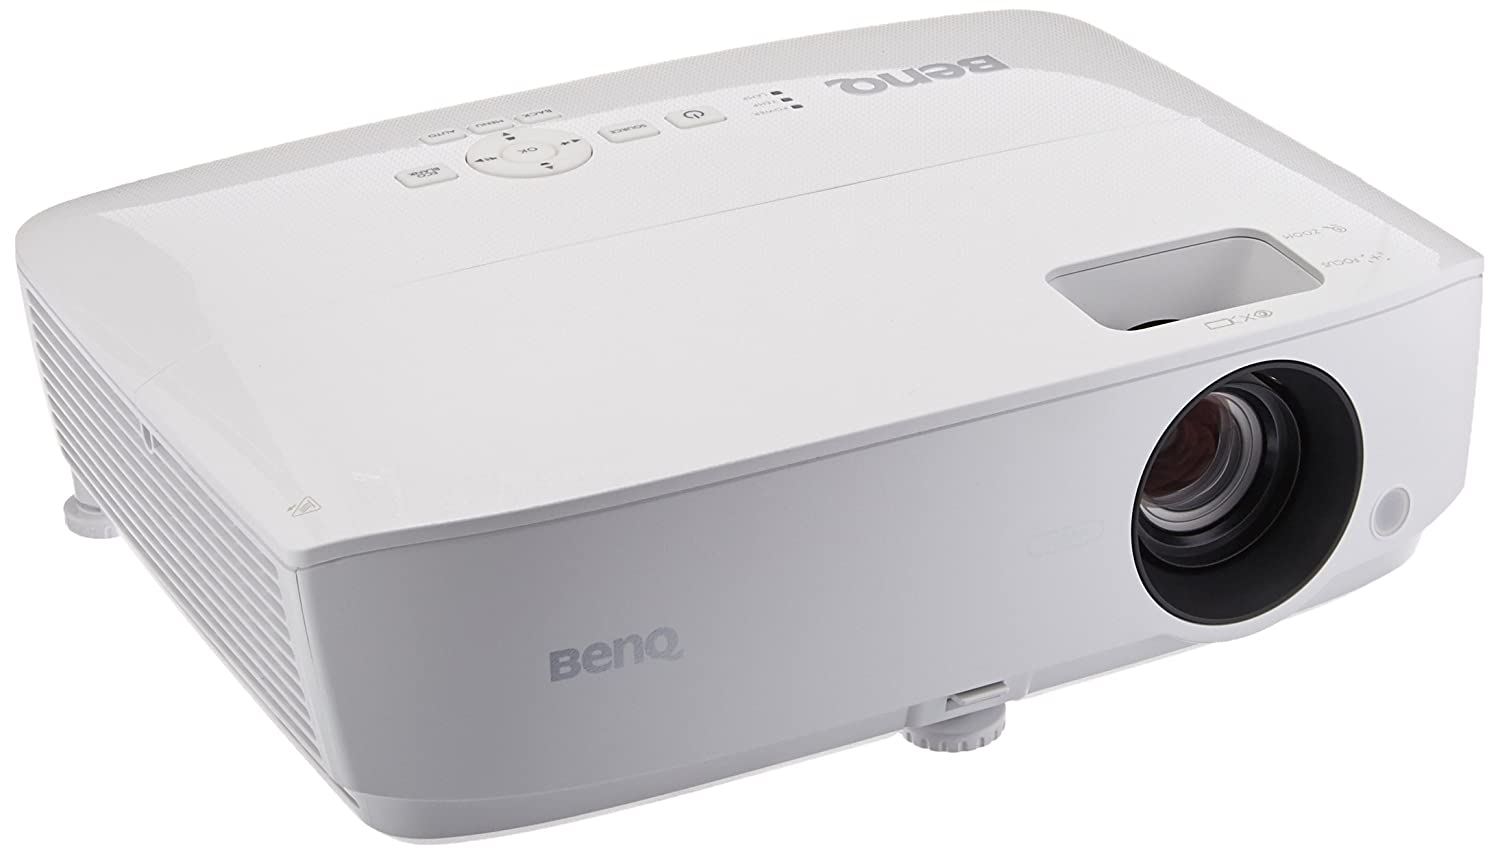 BenQ MH530FHD Projector Black Friday Deals